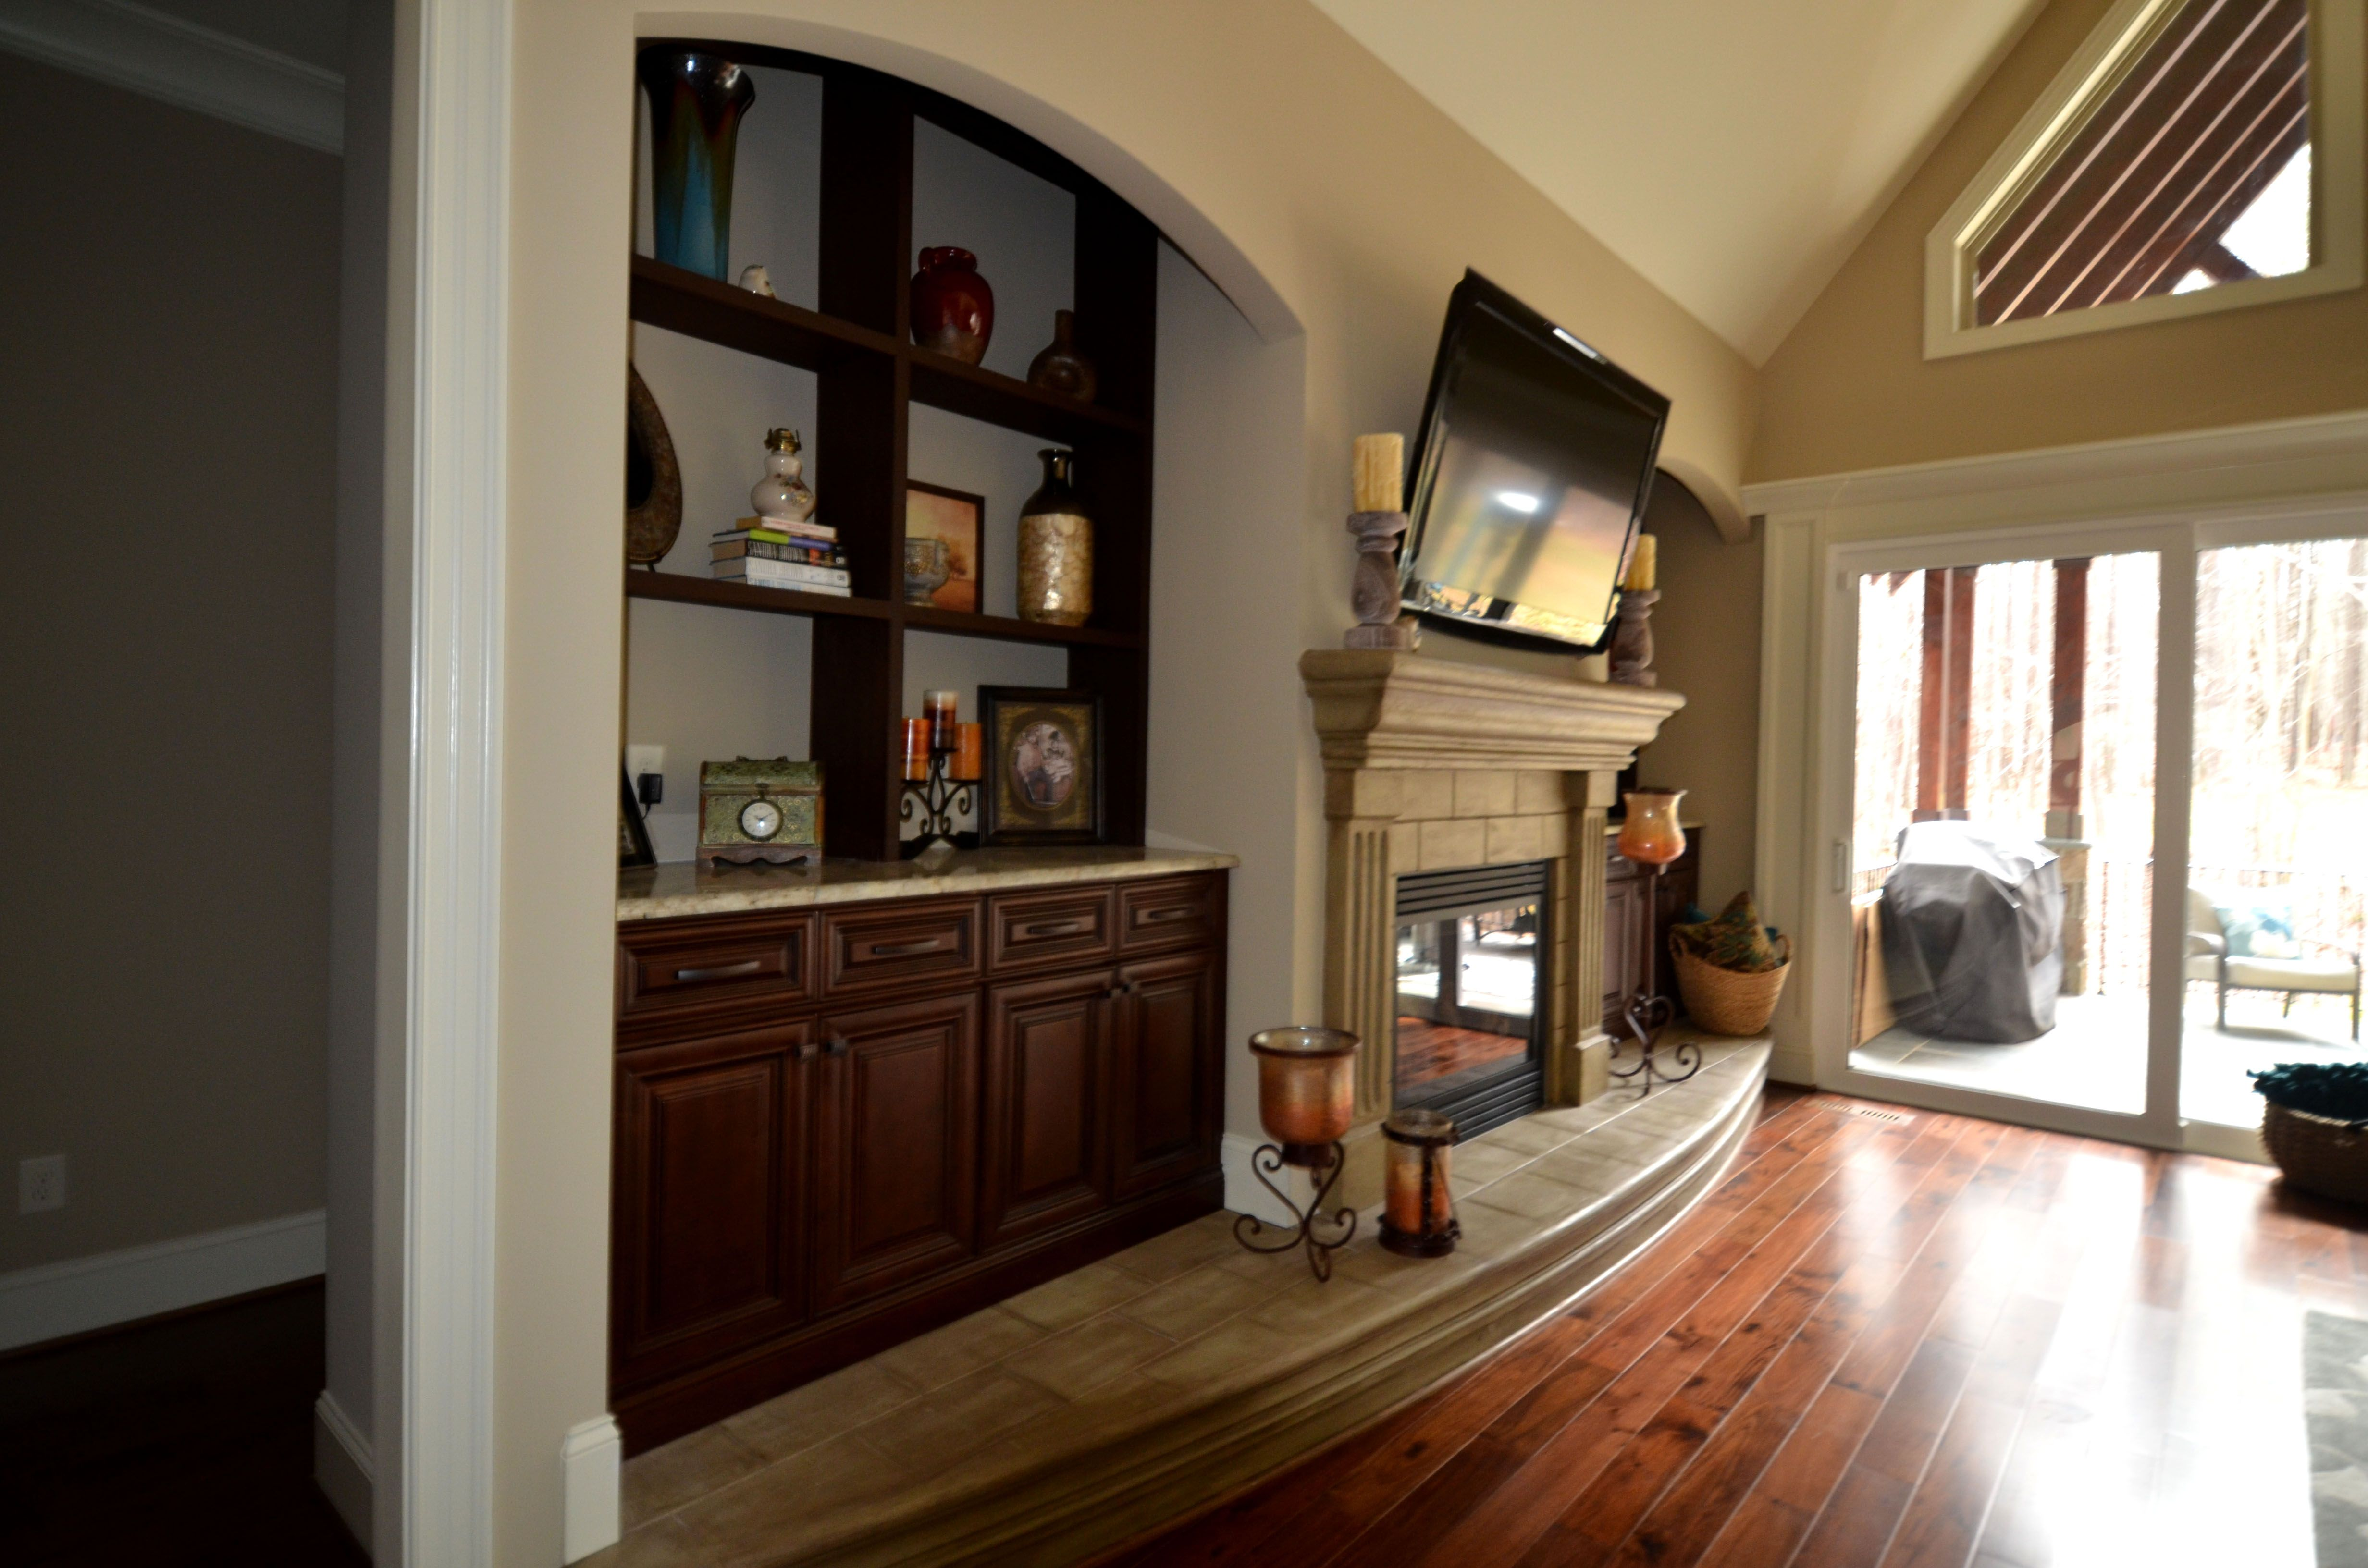 Family Room Charleston Saddle Cabinets Lily Ann Cabinets Com Family Room Kitchen Cabinet Organization Lily Ann Cabinets